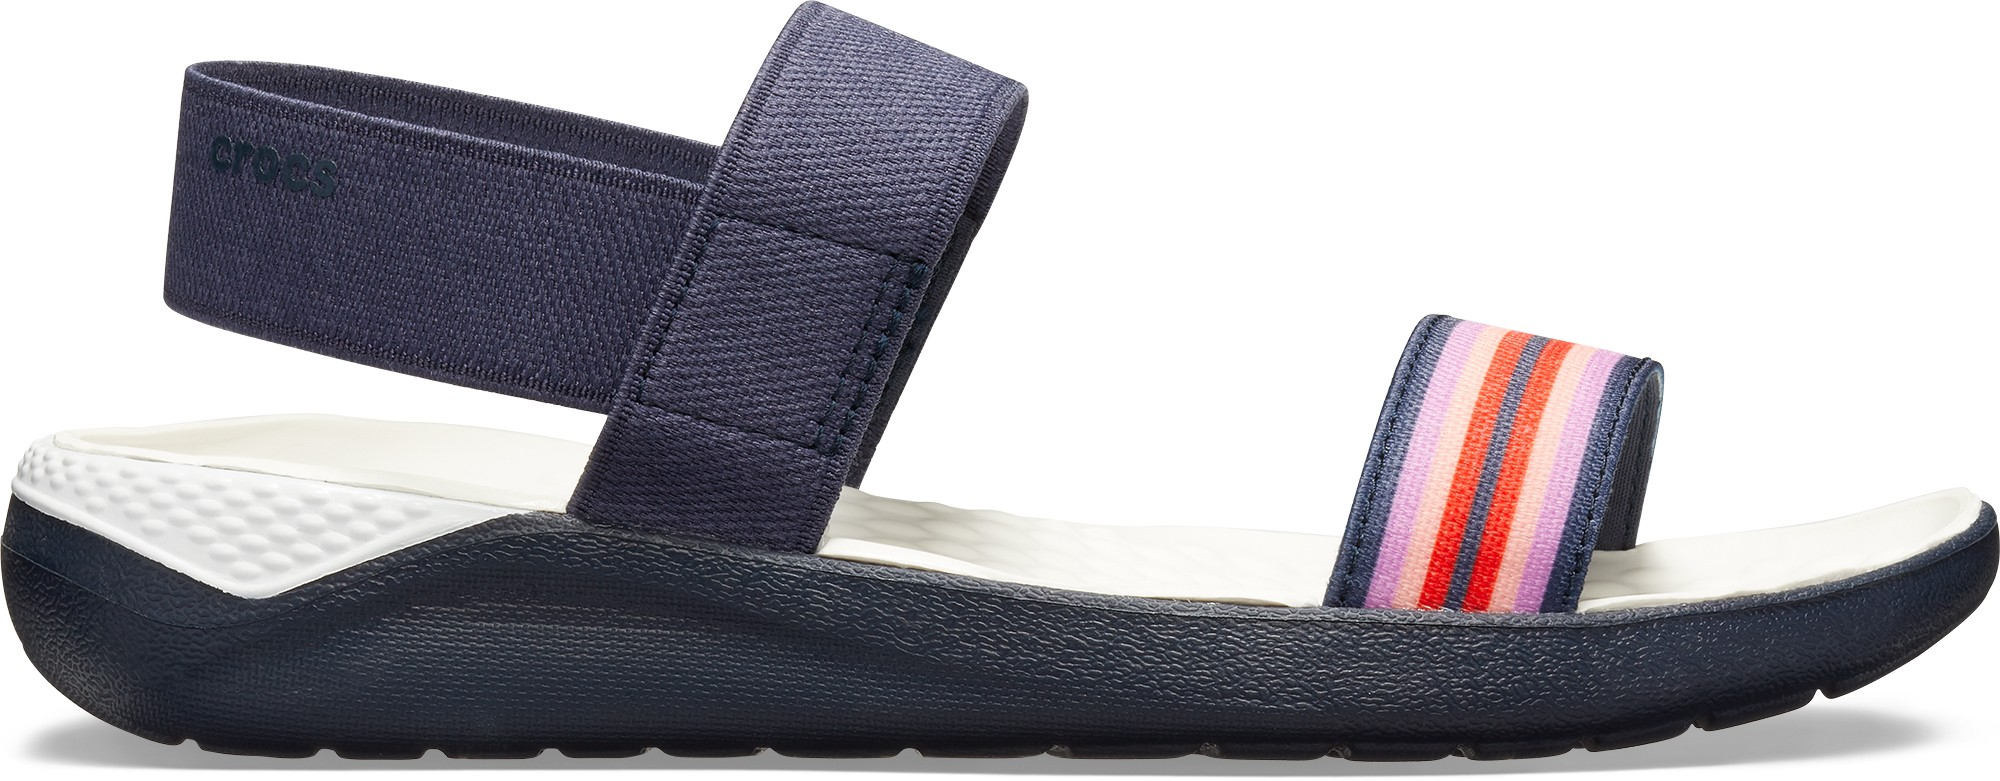 Crocs™ Women's LiteRide Sandal Navy Colorblock/Navy 37,5